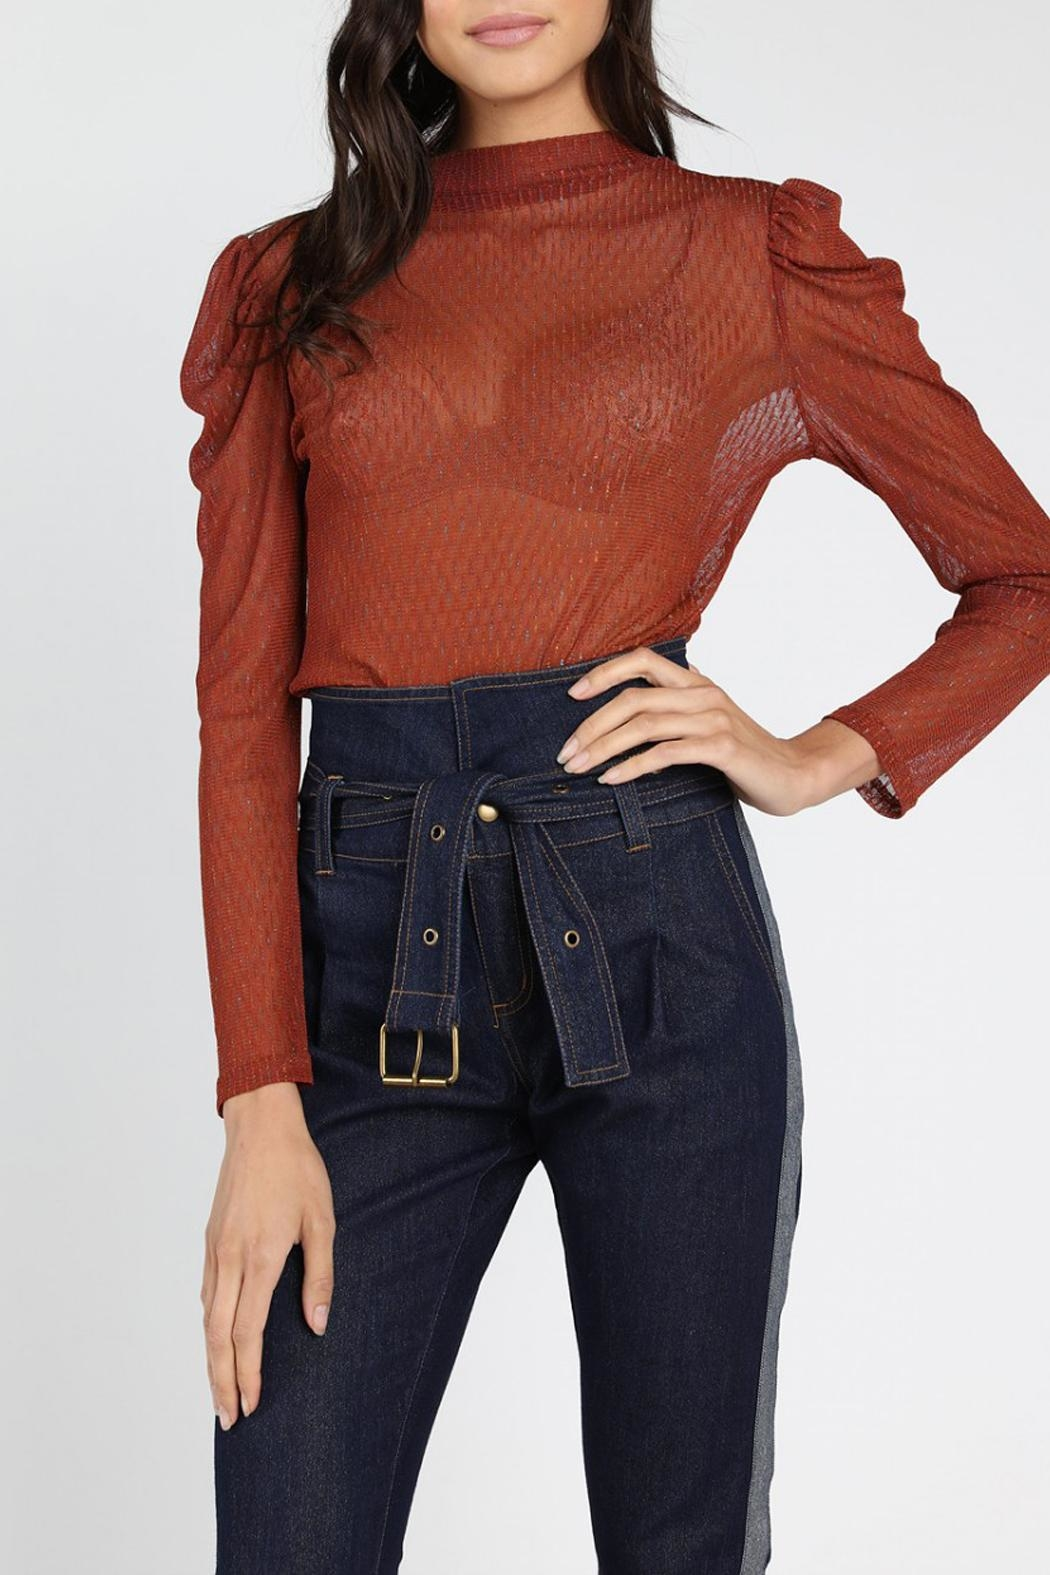 Honey Punch Saturday-Night Fever Top - Front Full Image